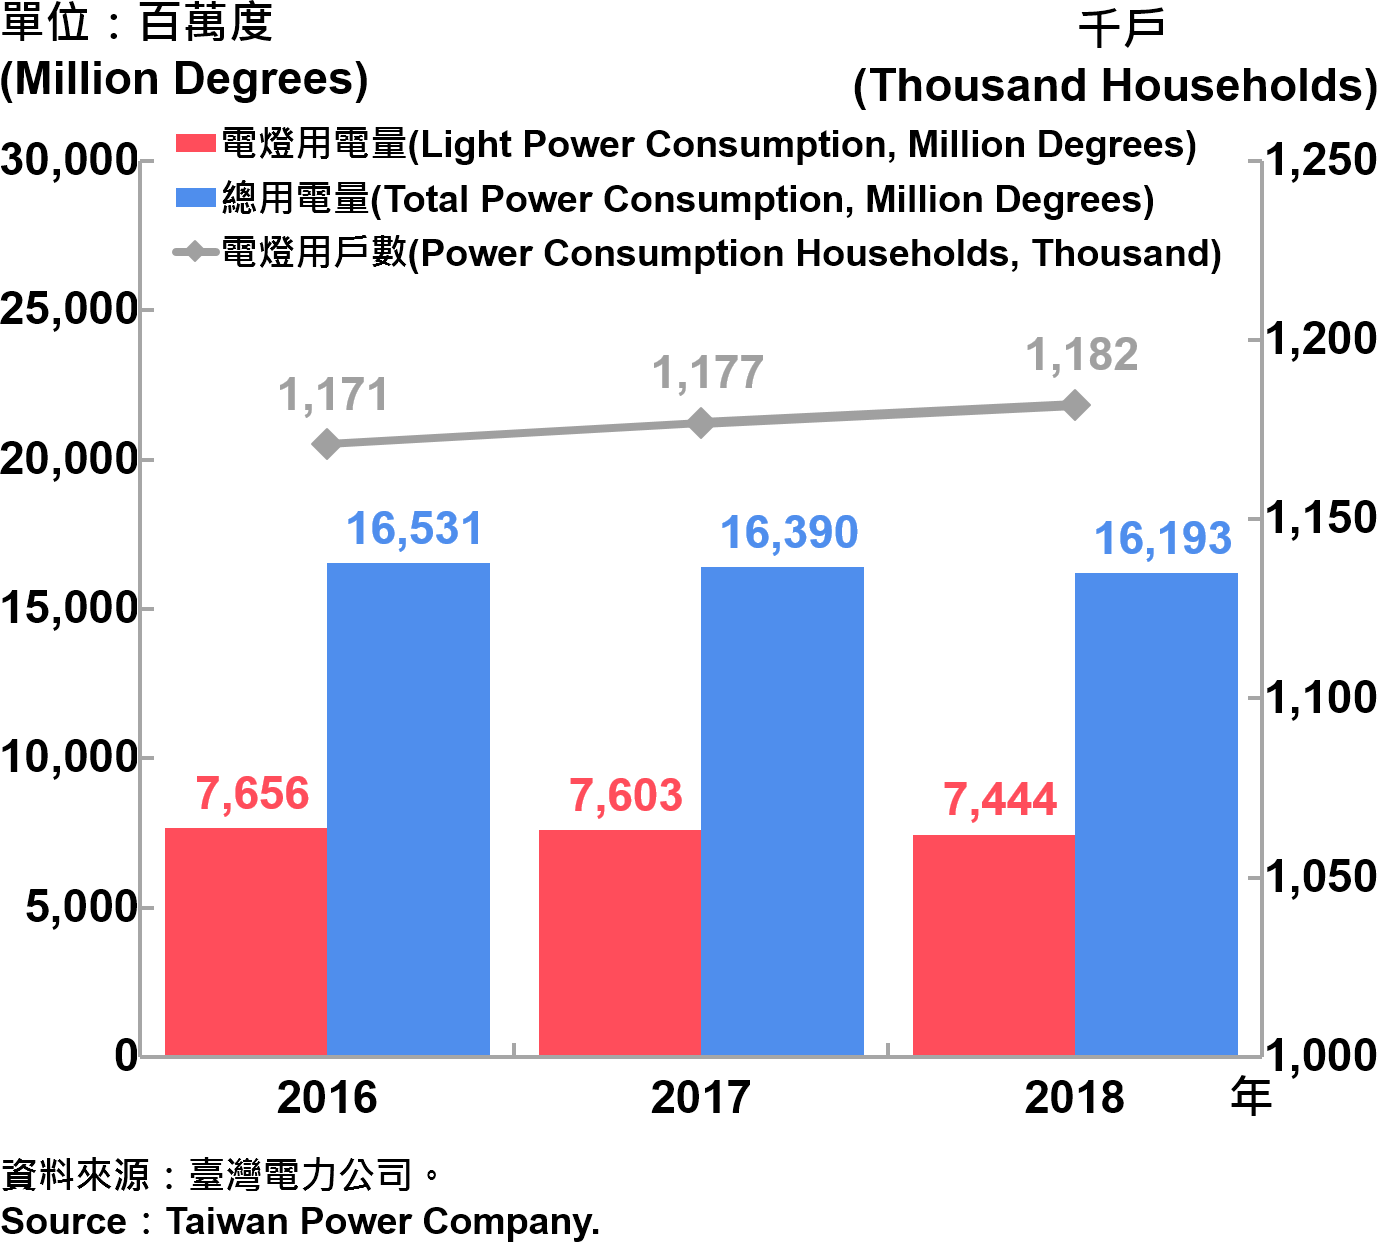 臺北市電力總用電量—2018 Electric Power Consumption in Taipei City—2018